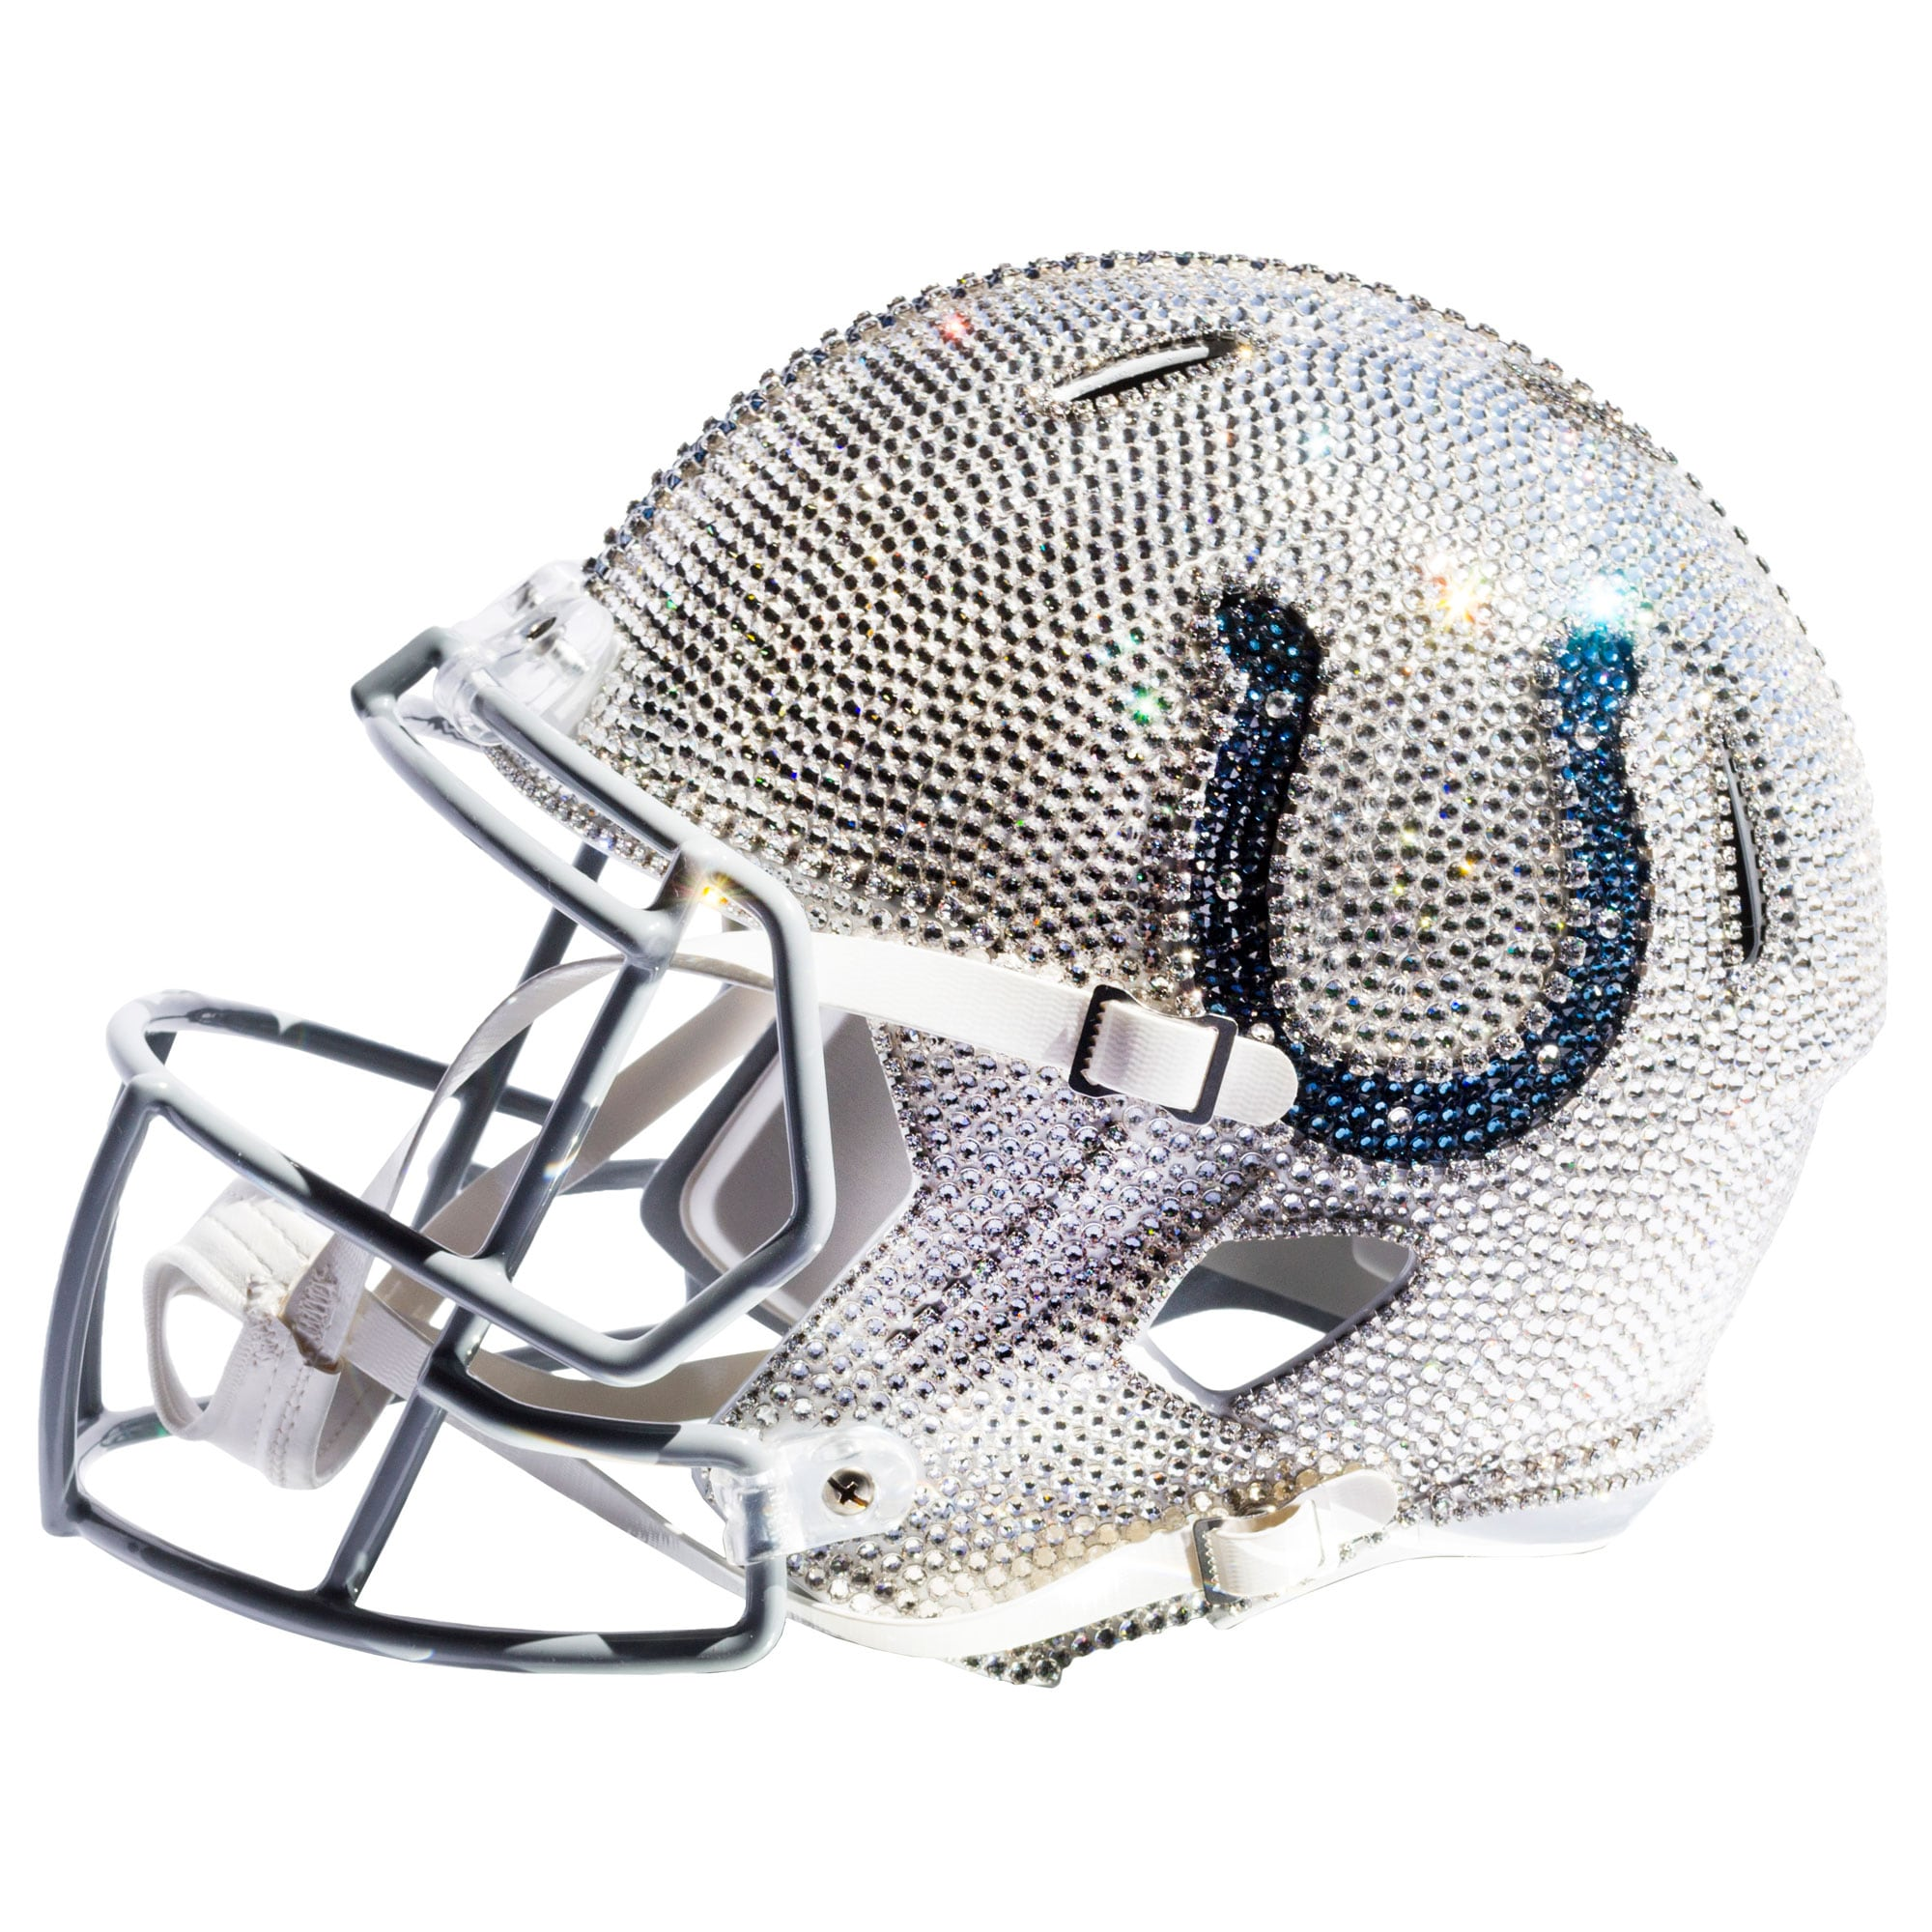 Indianapolis Colts Swarovski Crystal Large Football Helmet